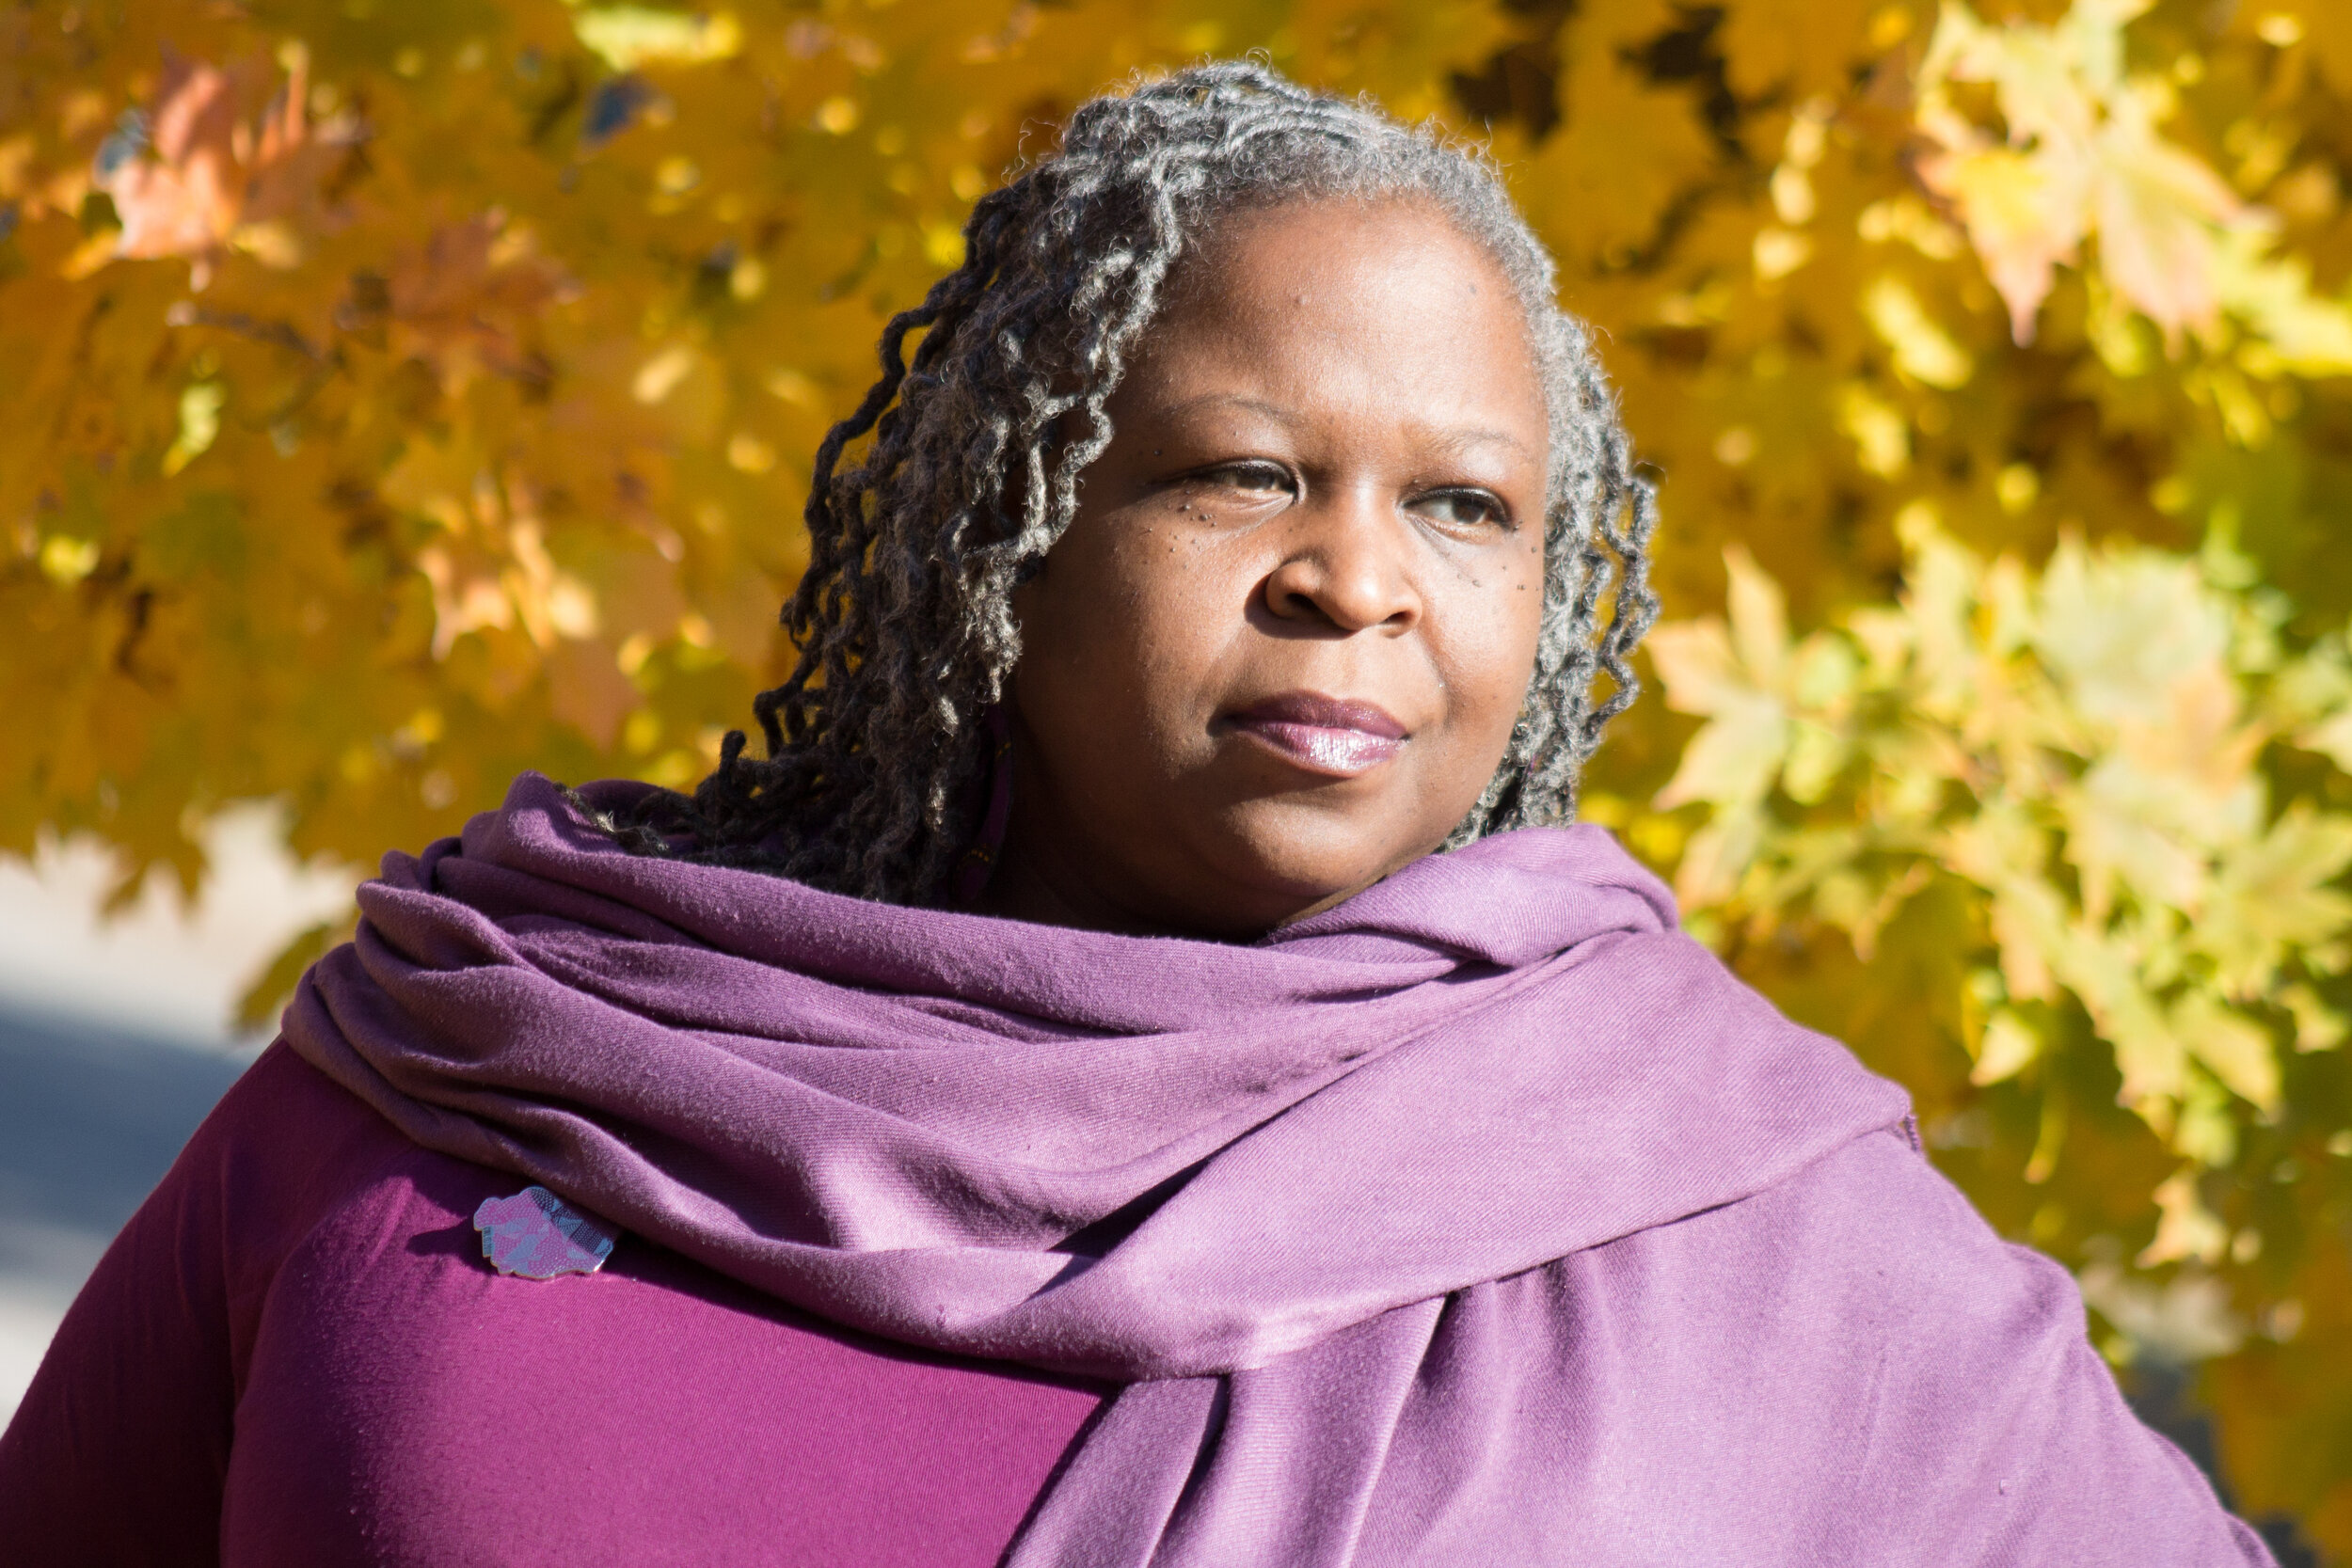 Rev. Lacette Cross - Will You Be Whole / Restoration Fellowship RVARichmond, Virginia